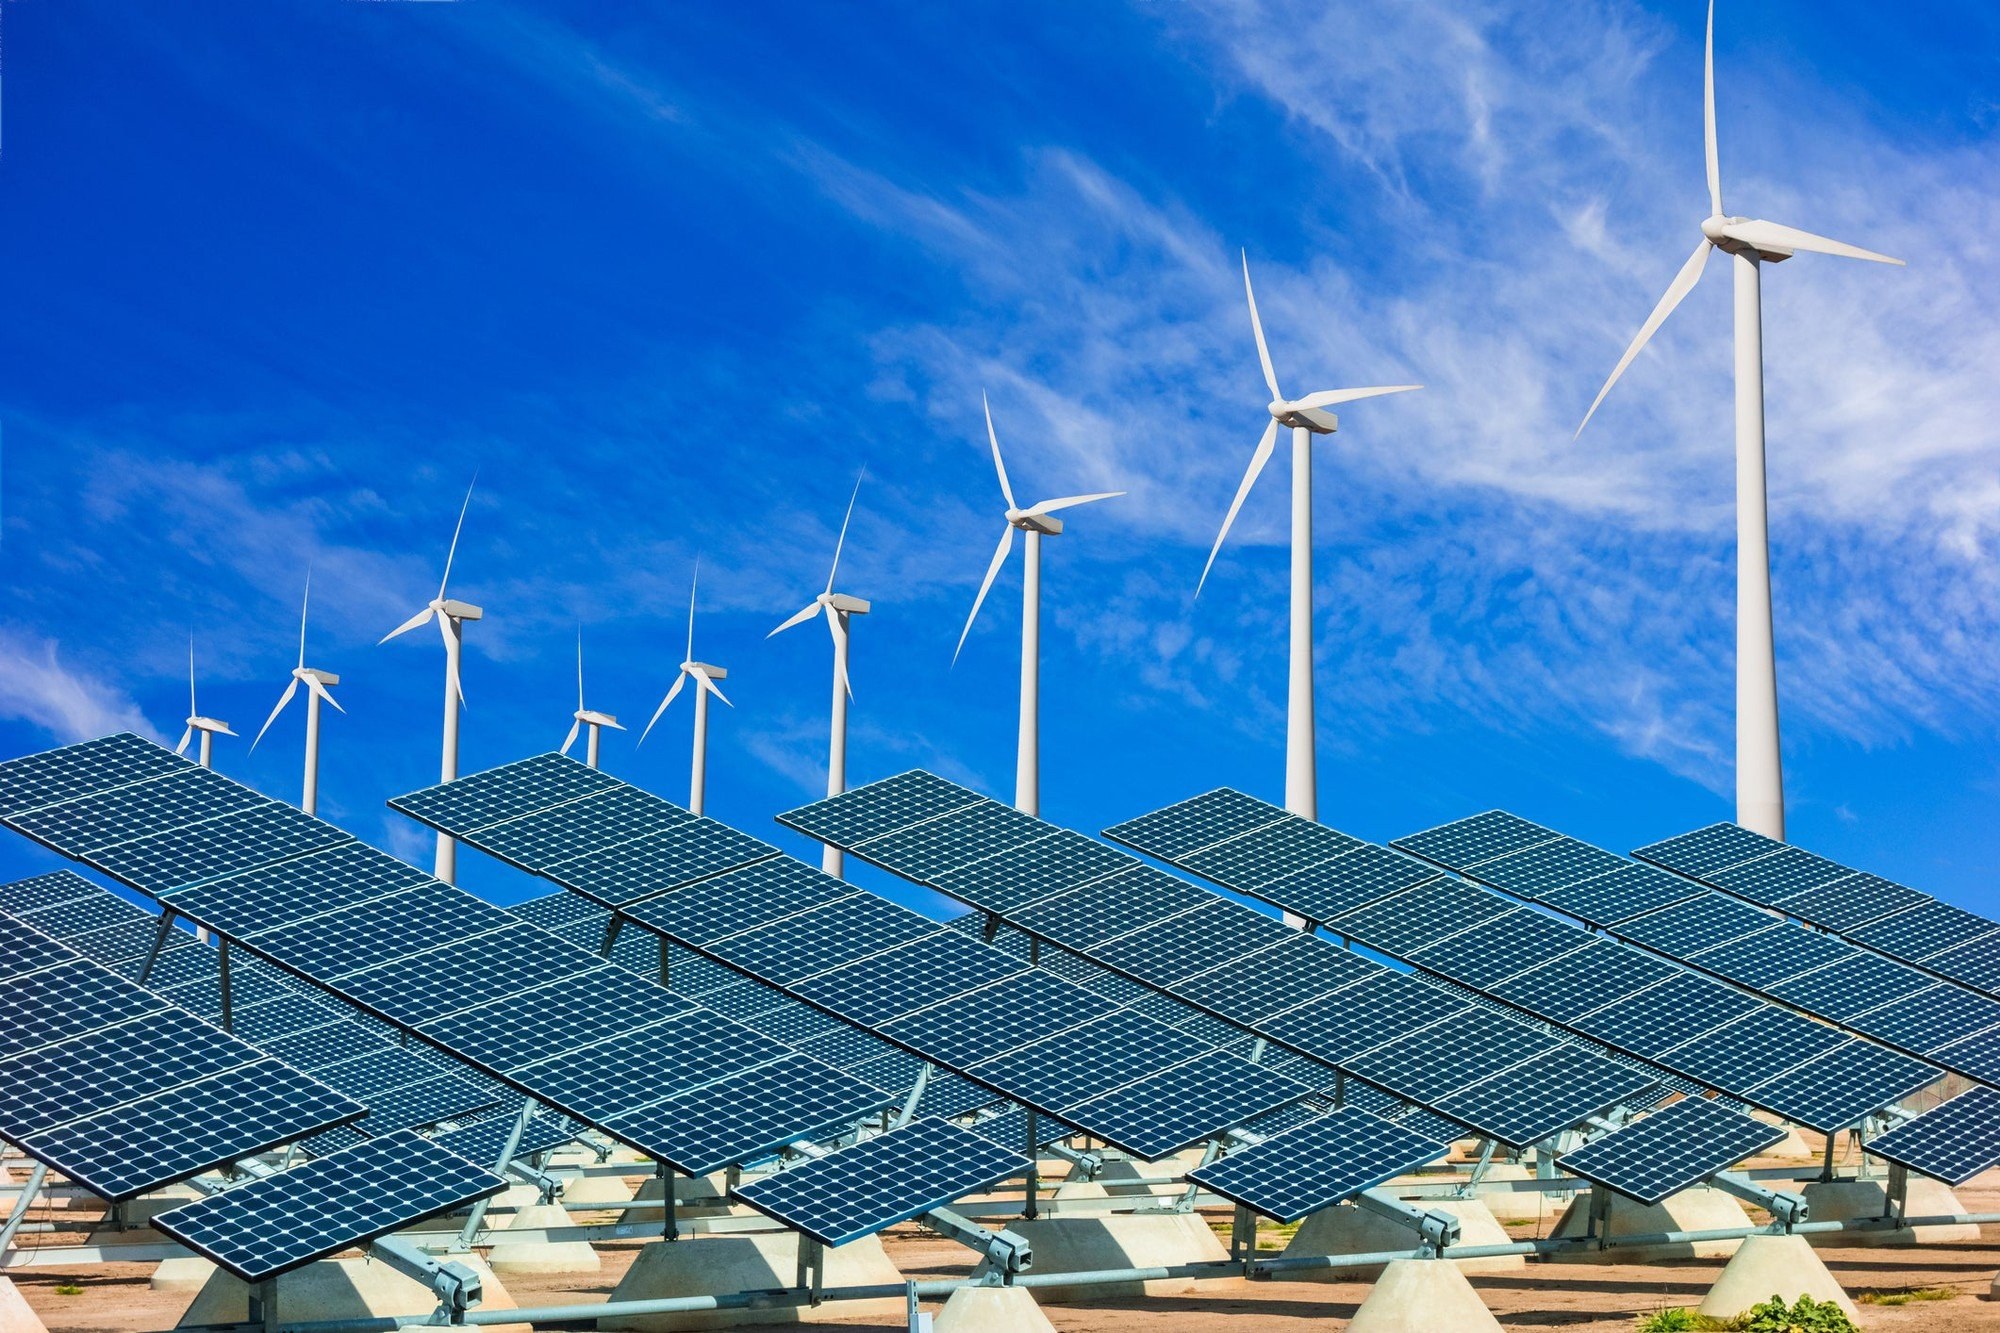 Renewables are expected to overtake coal as the method of generating electricity